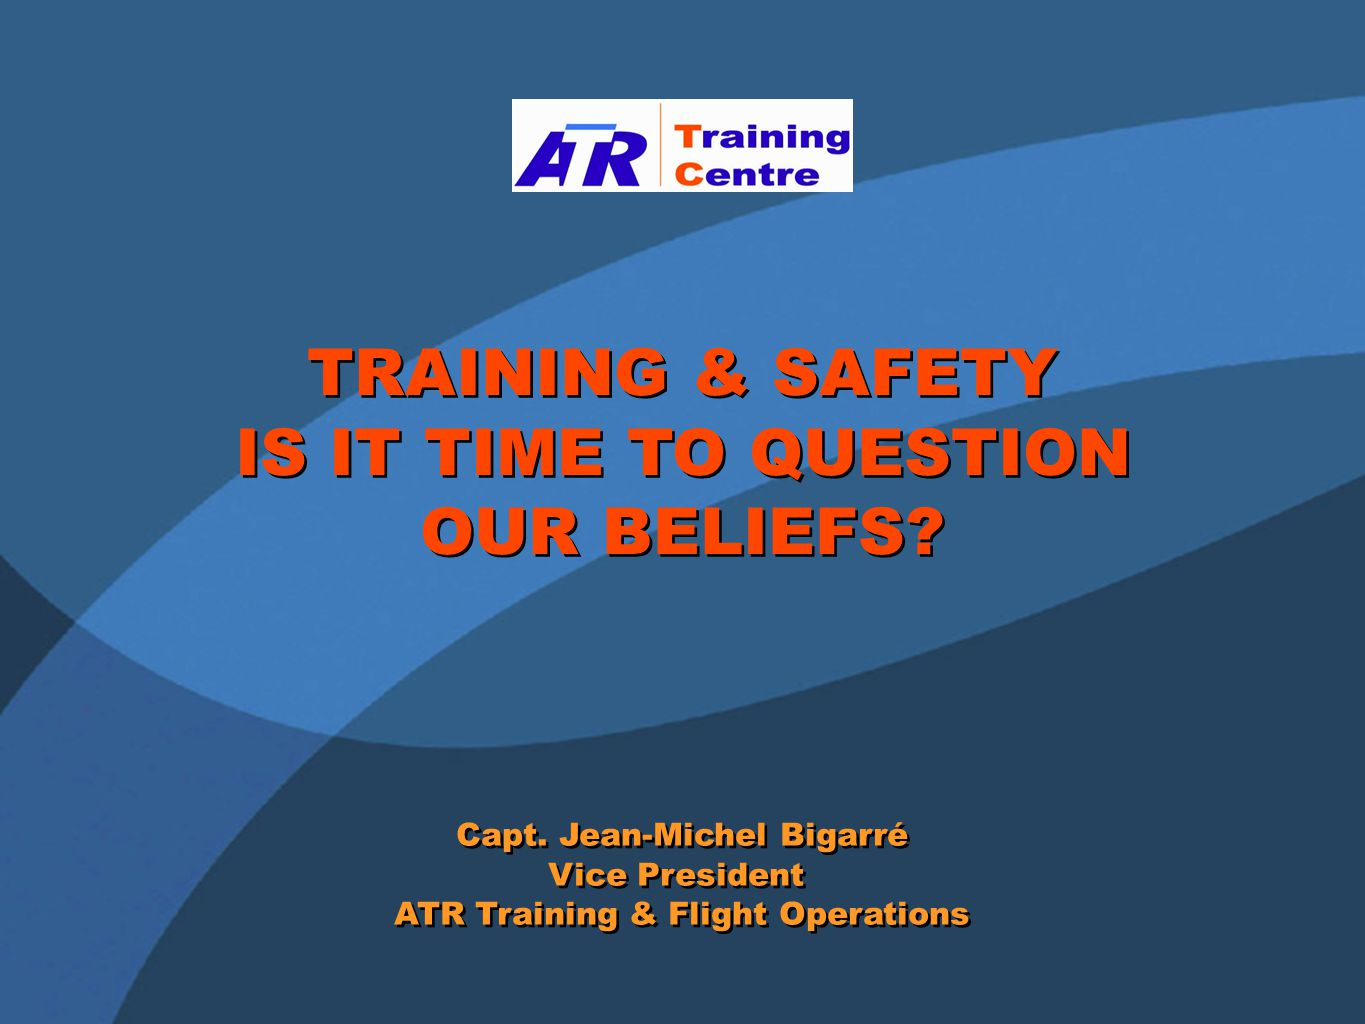 TRAINING & SAFETY IS IT TIME TO QUESTION OUR BELIEFS.